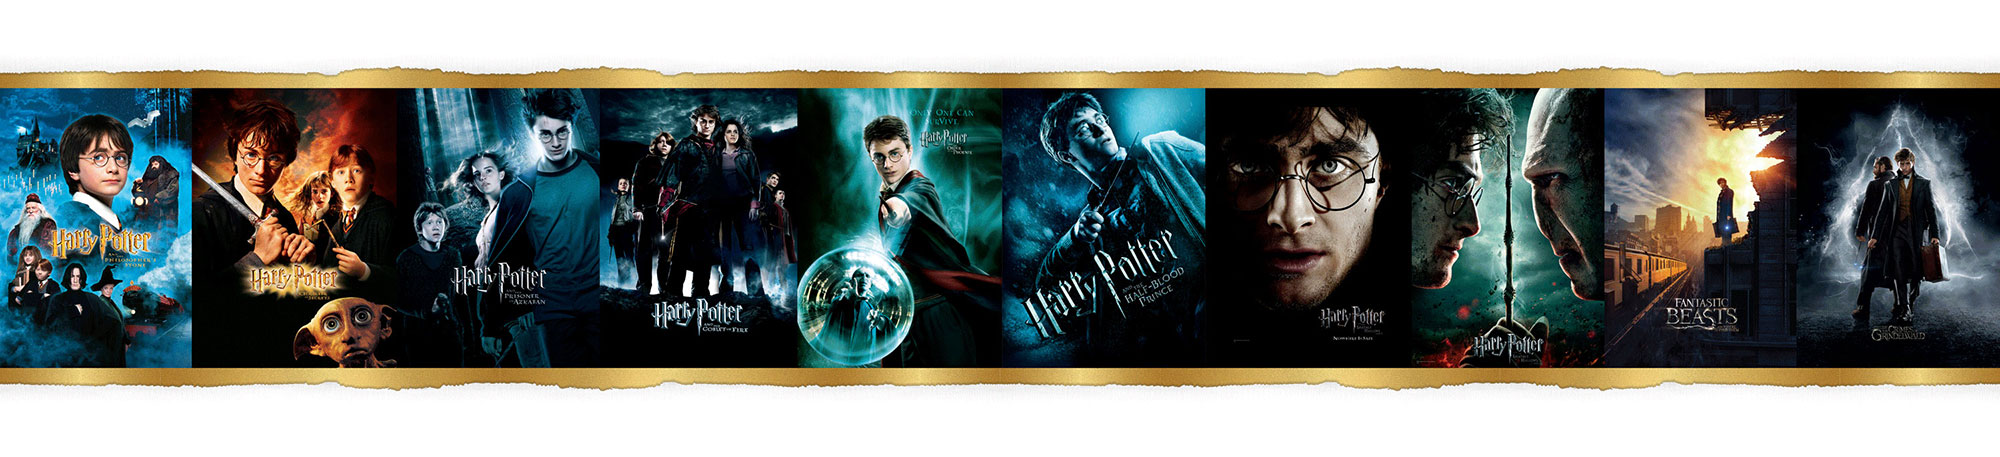 Wizarding World of Harry Potter movies